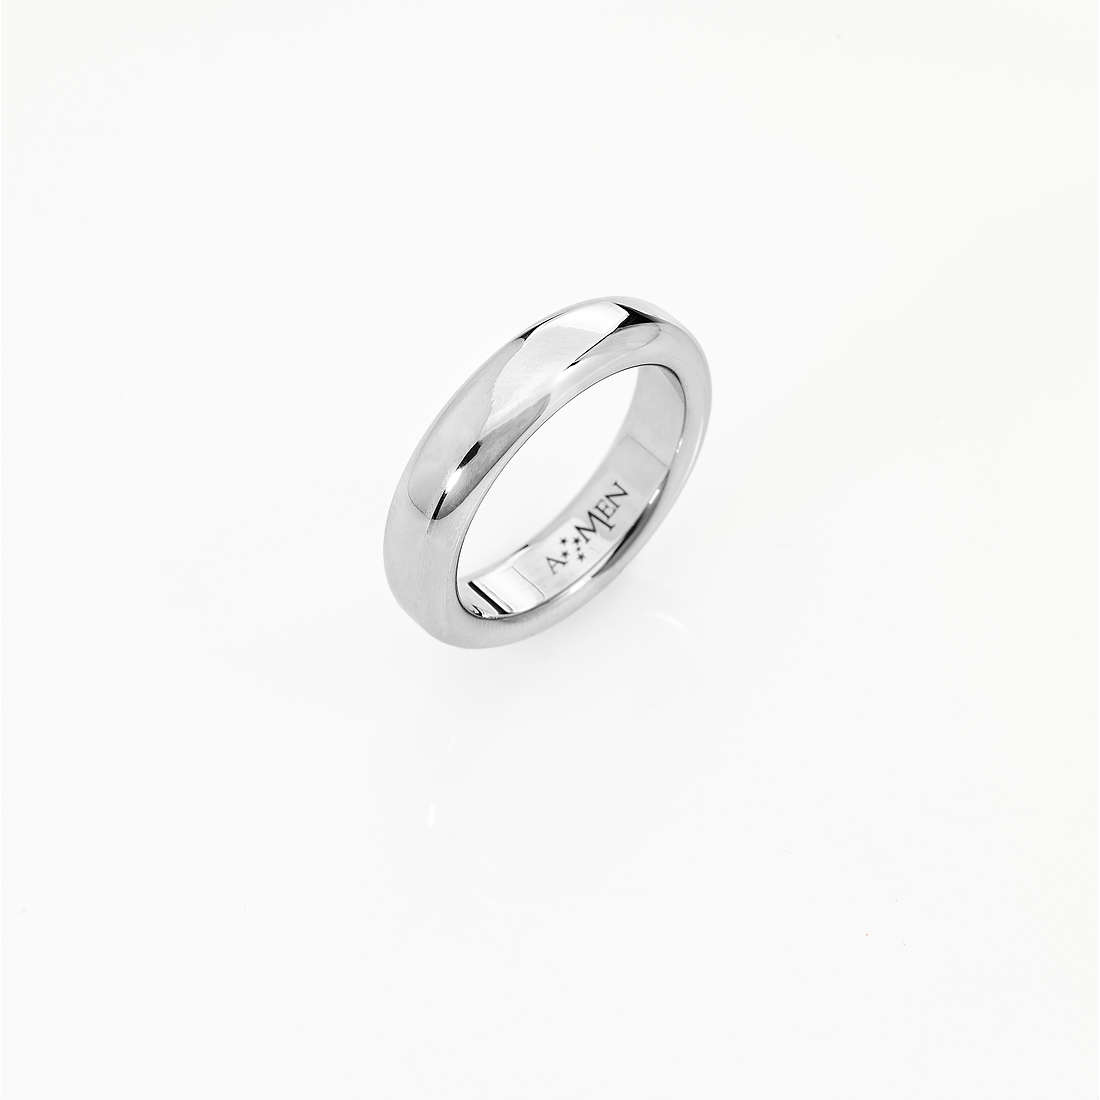 ring unisex jewellery Amen Fedona FE003-16